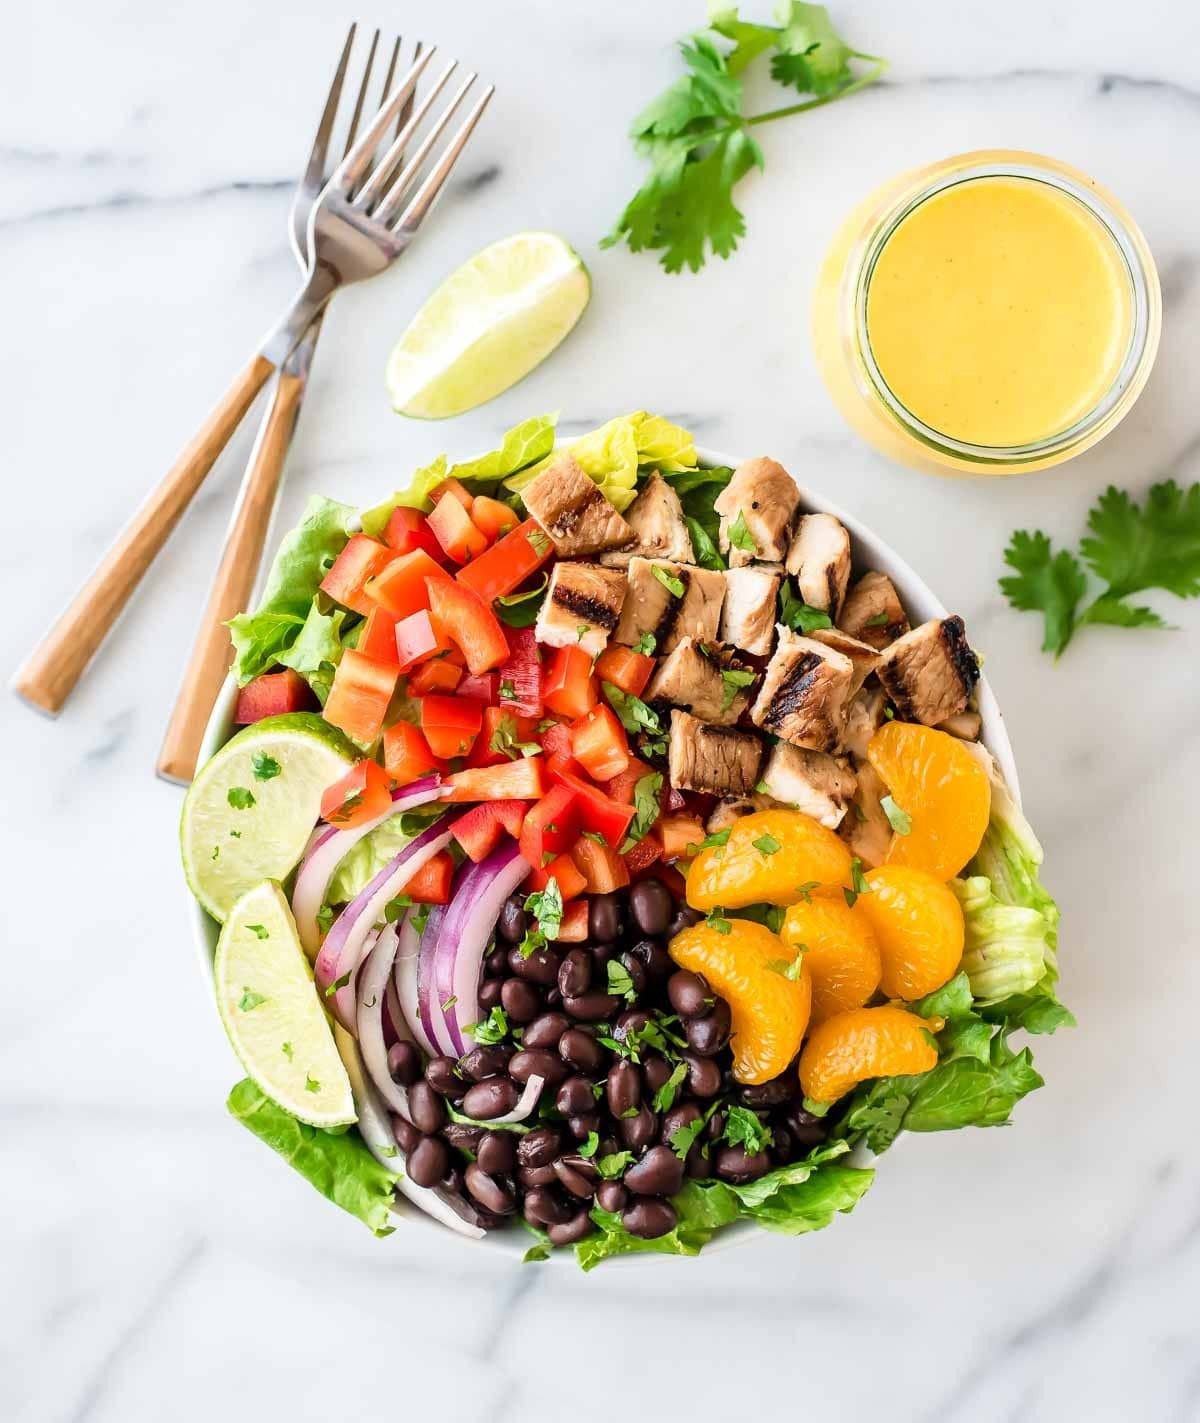 Grilled Chicken Salad Recipes  Caribbean Chicken Salad with Mango Dressing